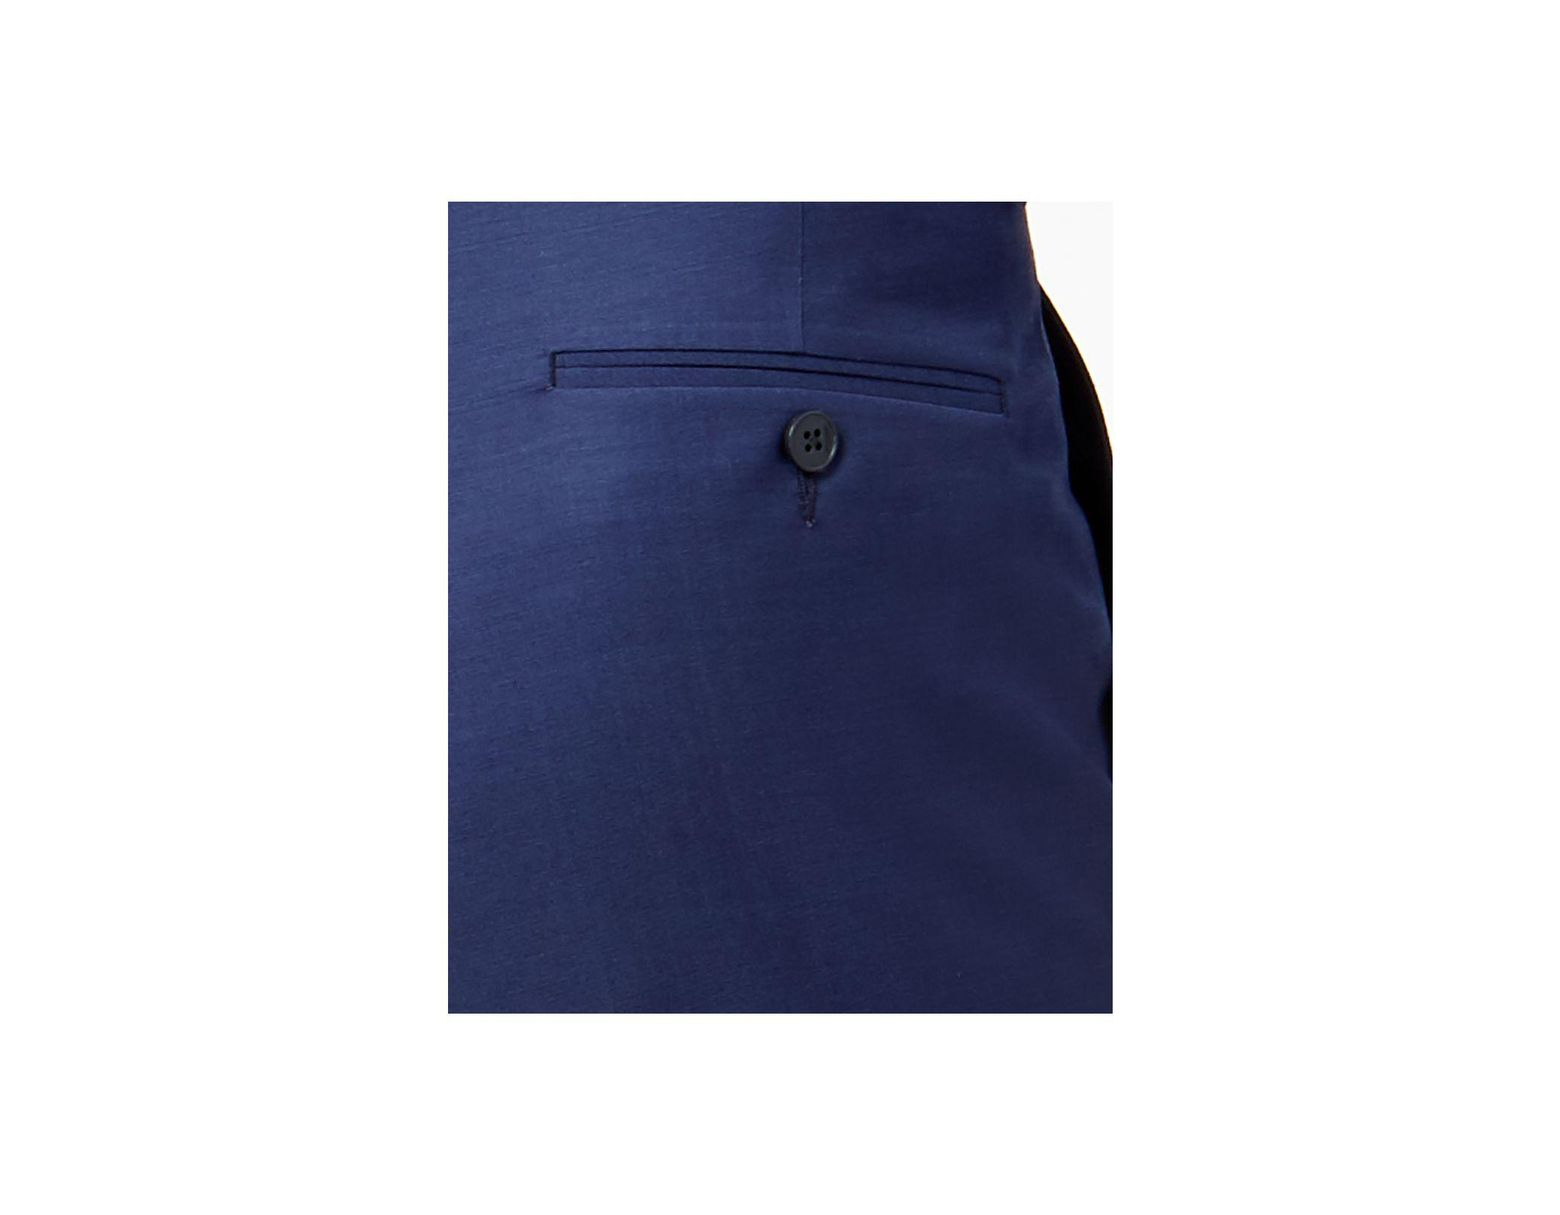 5db7b838c Calvin Klein Extra-slim Fit Infinite Stretch Blue Twill Suit Pants in Blue  for Men - Lyst